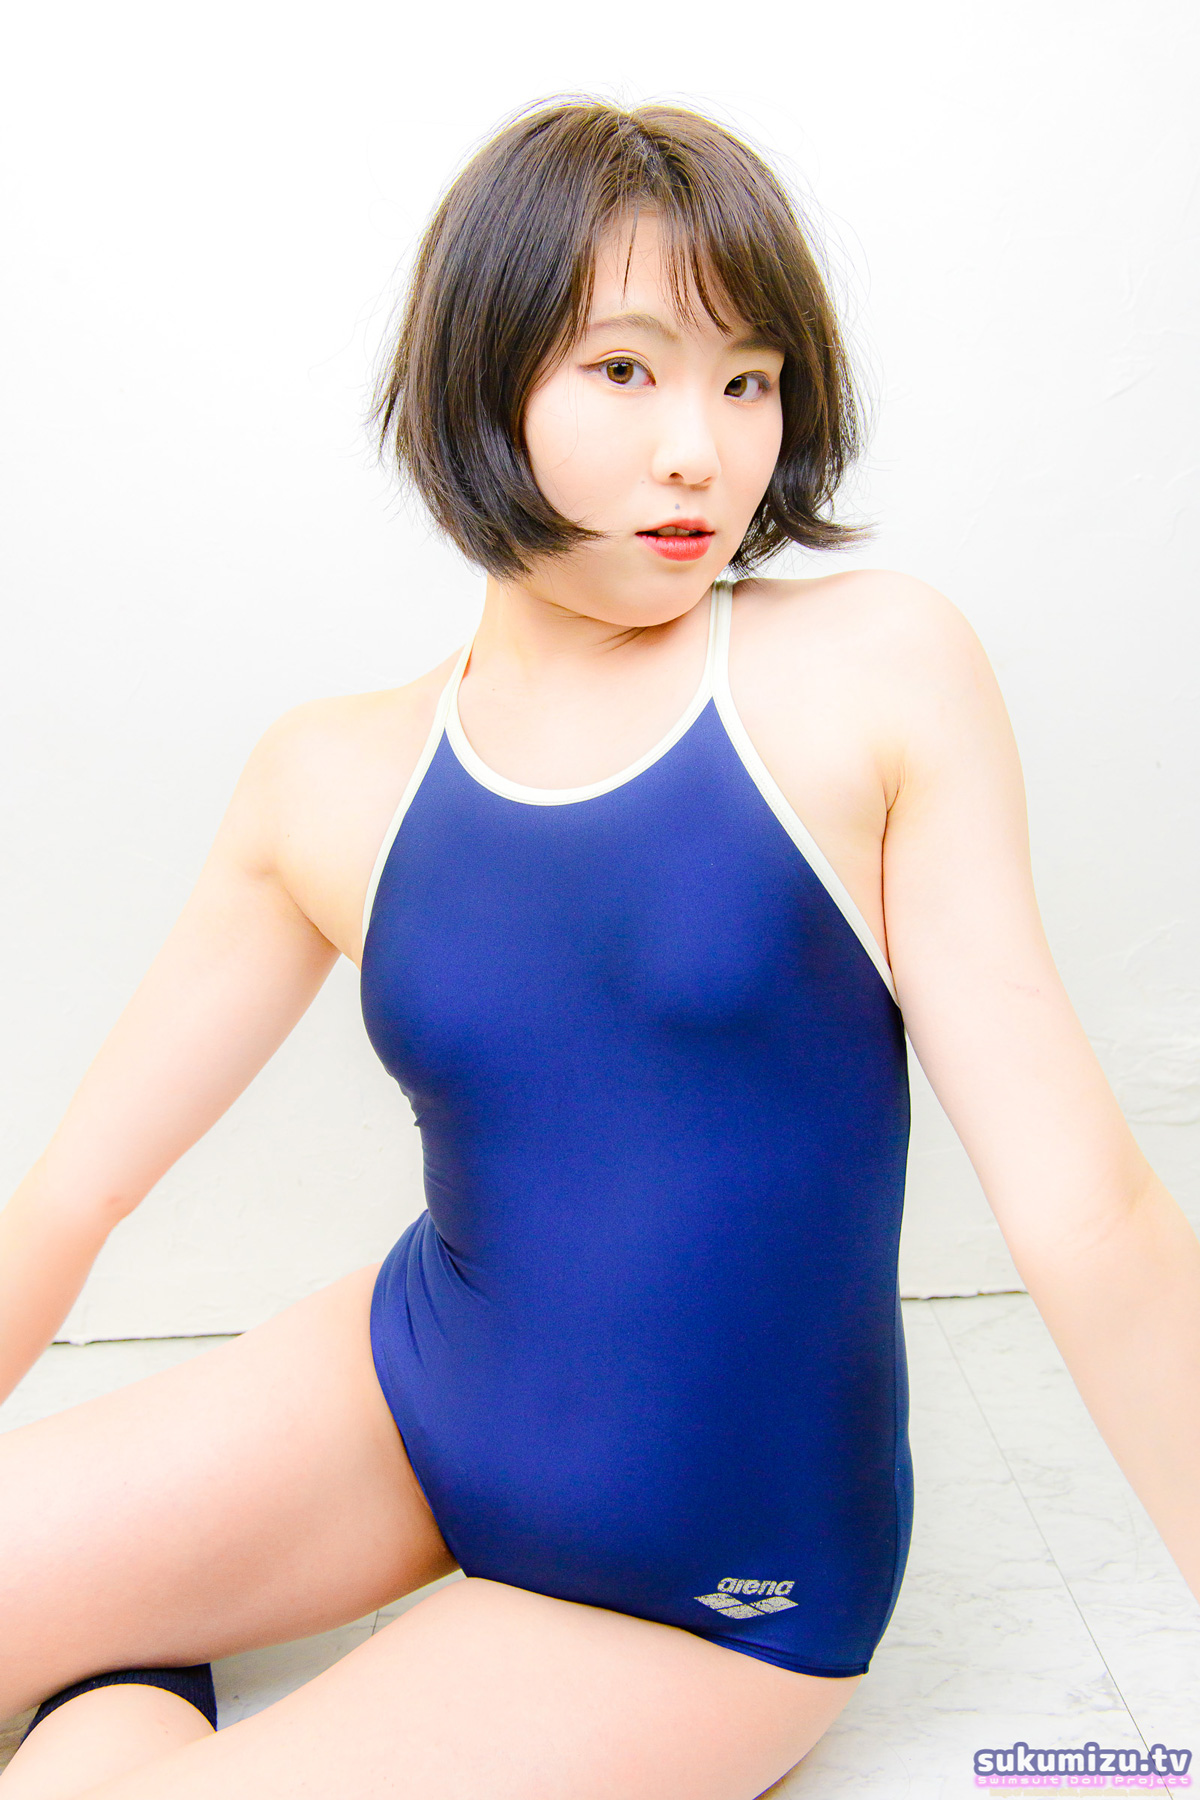 arena ARN-75W/NVY×蓬田みう(2)